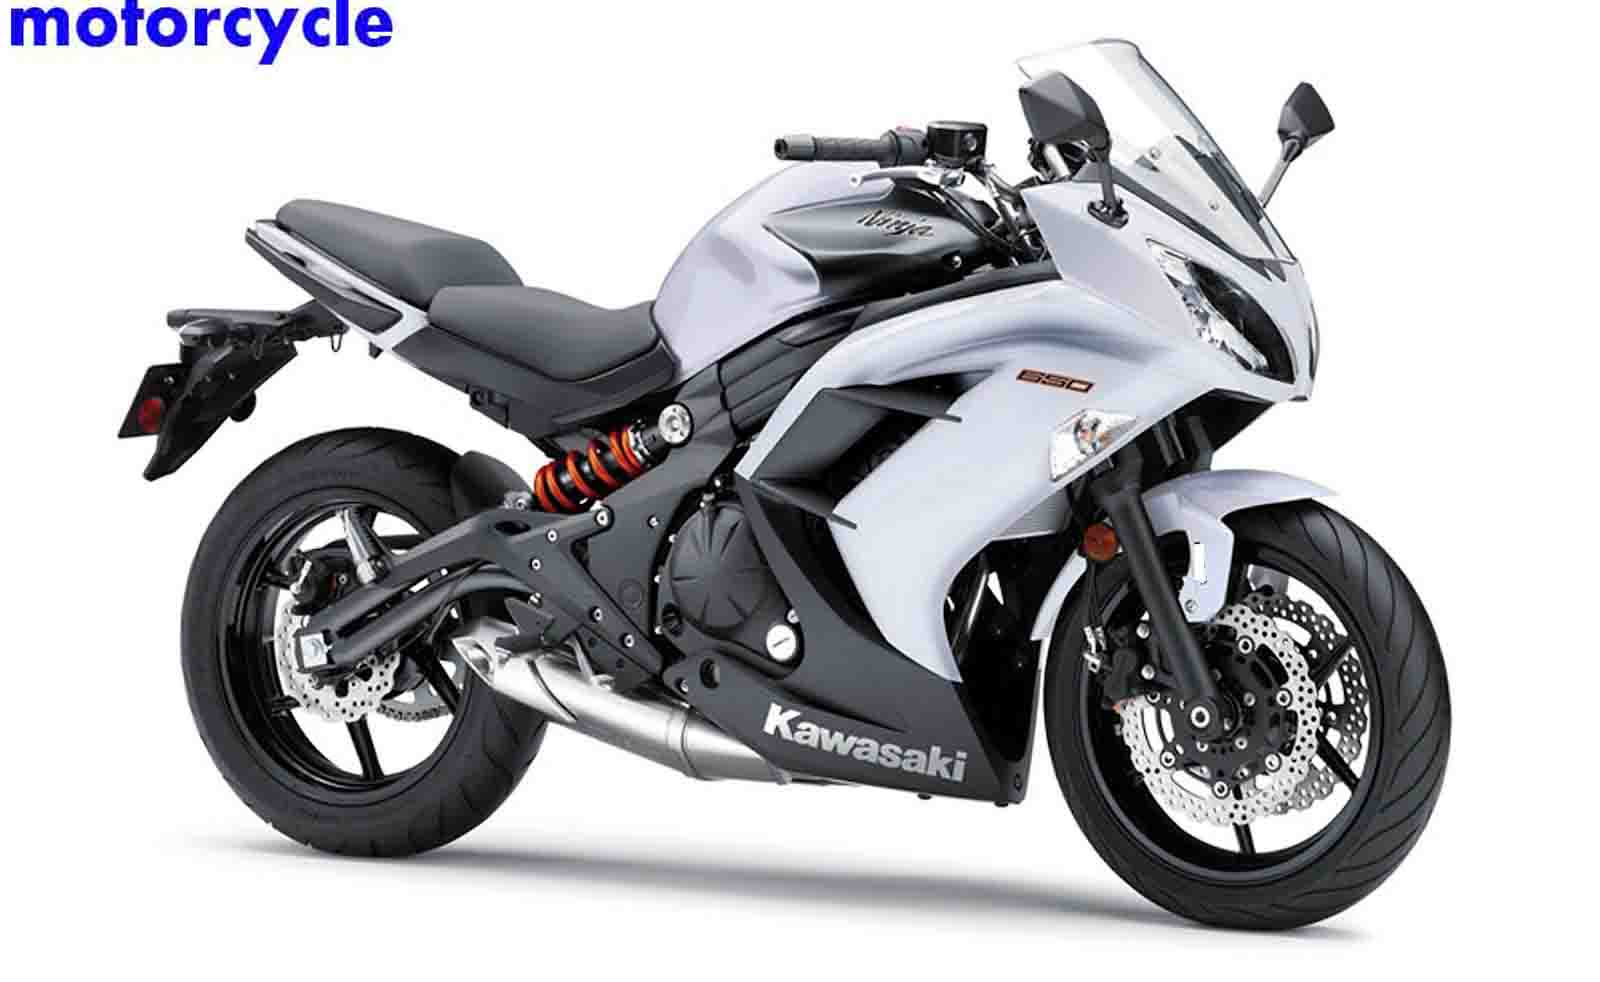 kawasaki er 6 motorcycle. Black Bedroom Furniture Sets. Home Design Ideas